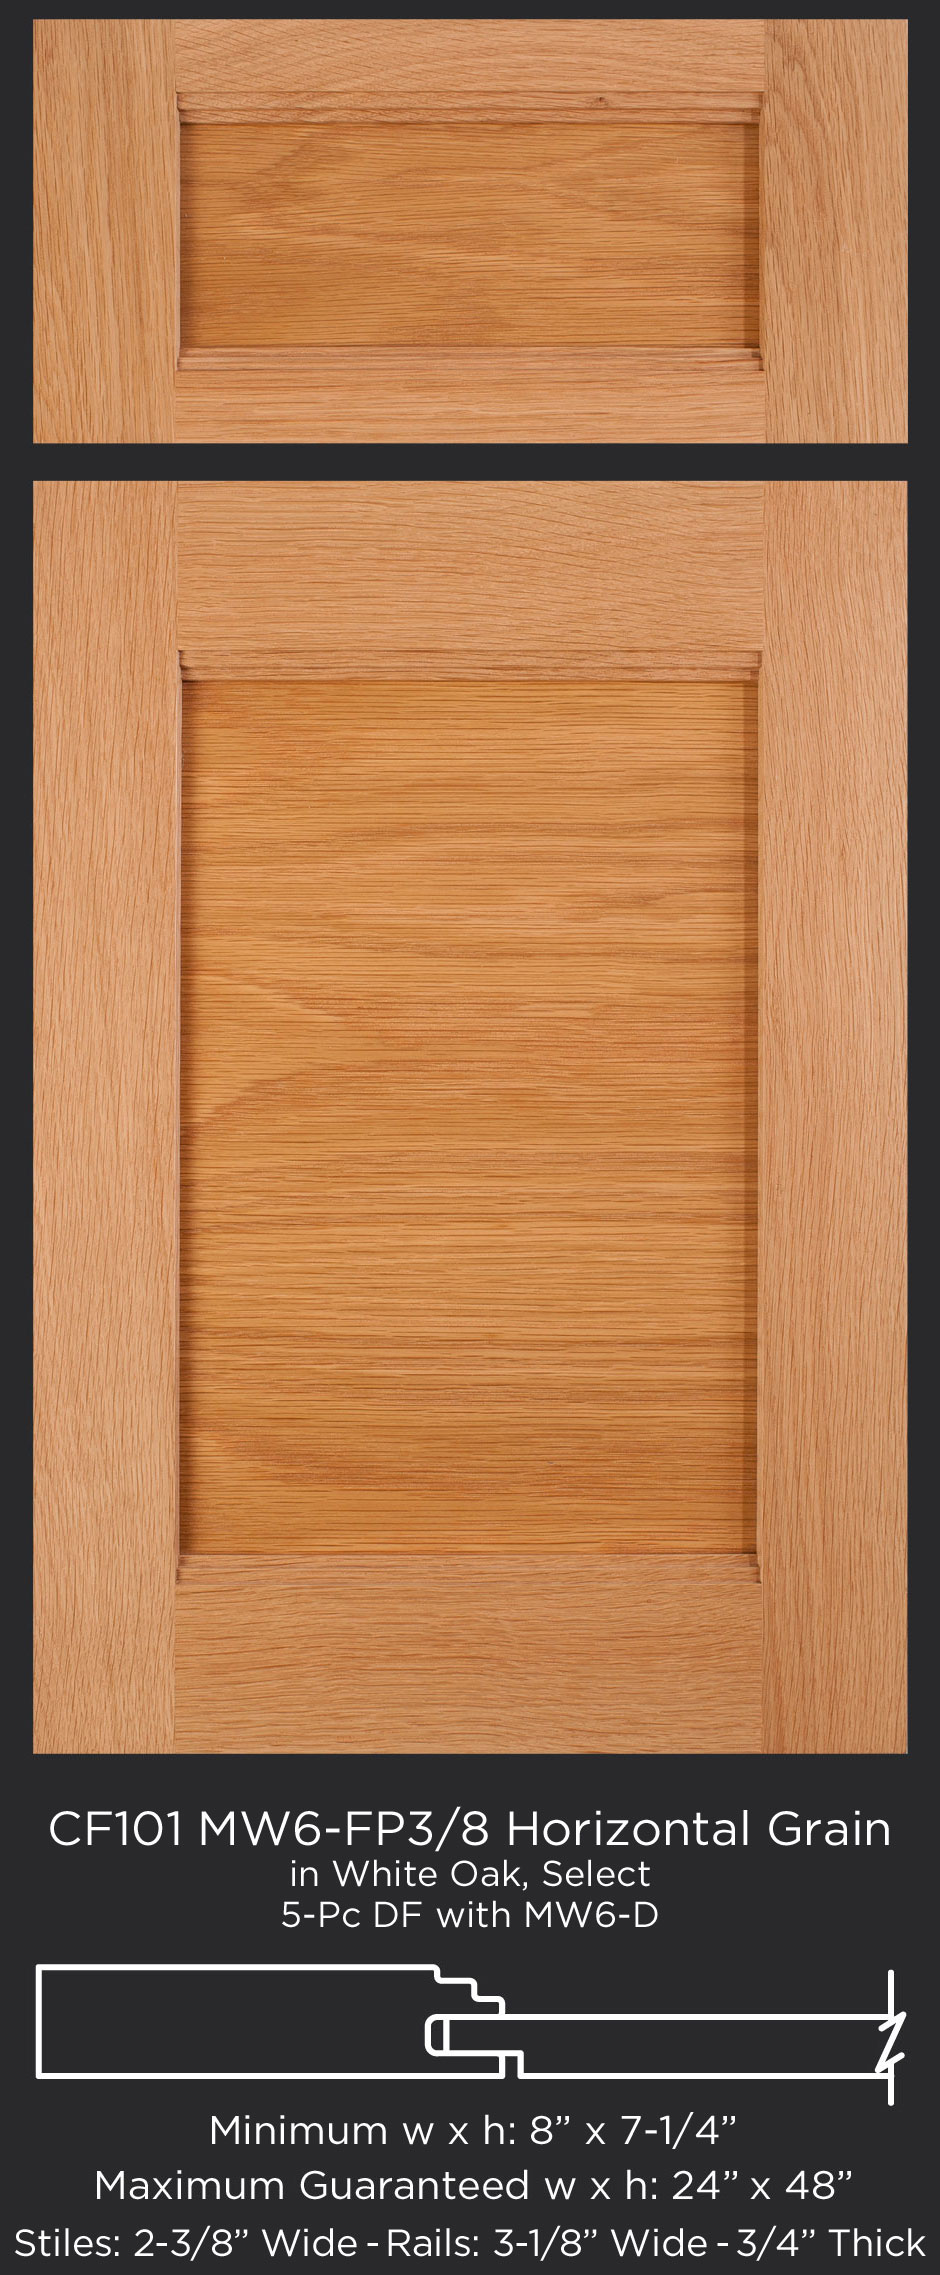 Cf101 mw6 fp38 white oak horizontal grain mw6 d profile for 6 horizontal panel doors